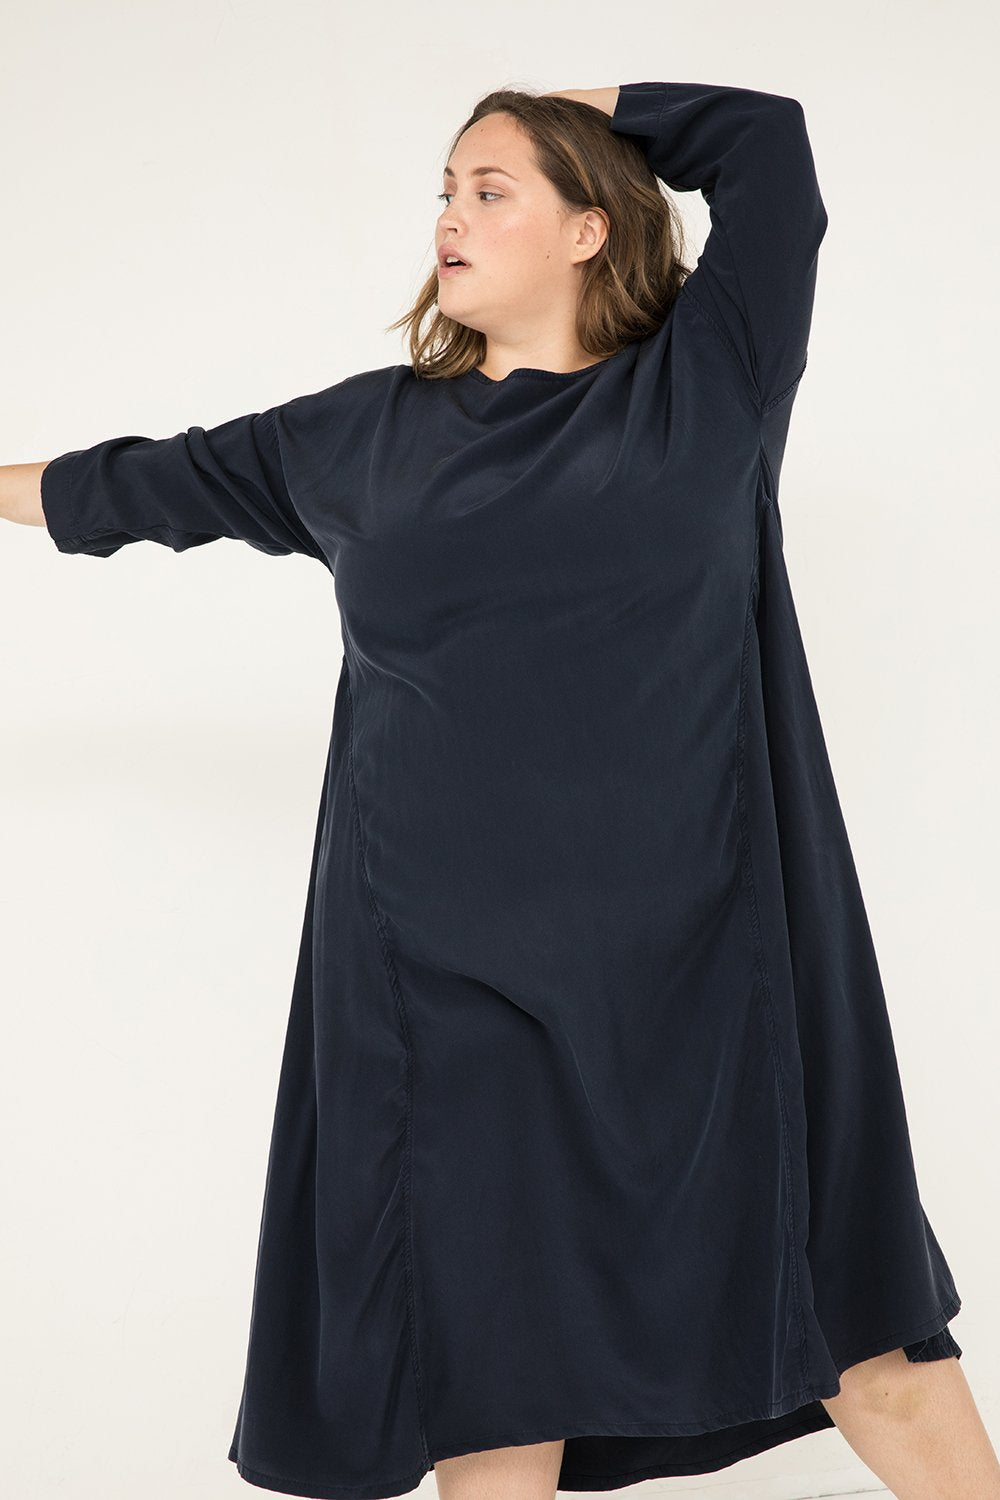 Parabola Dress in Silk Crepe Navy - Sam-2XL